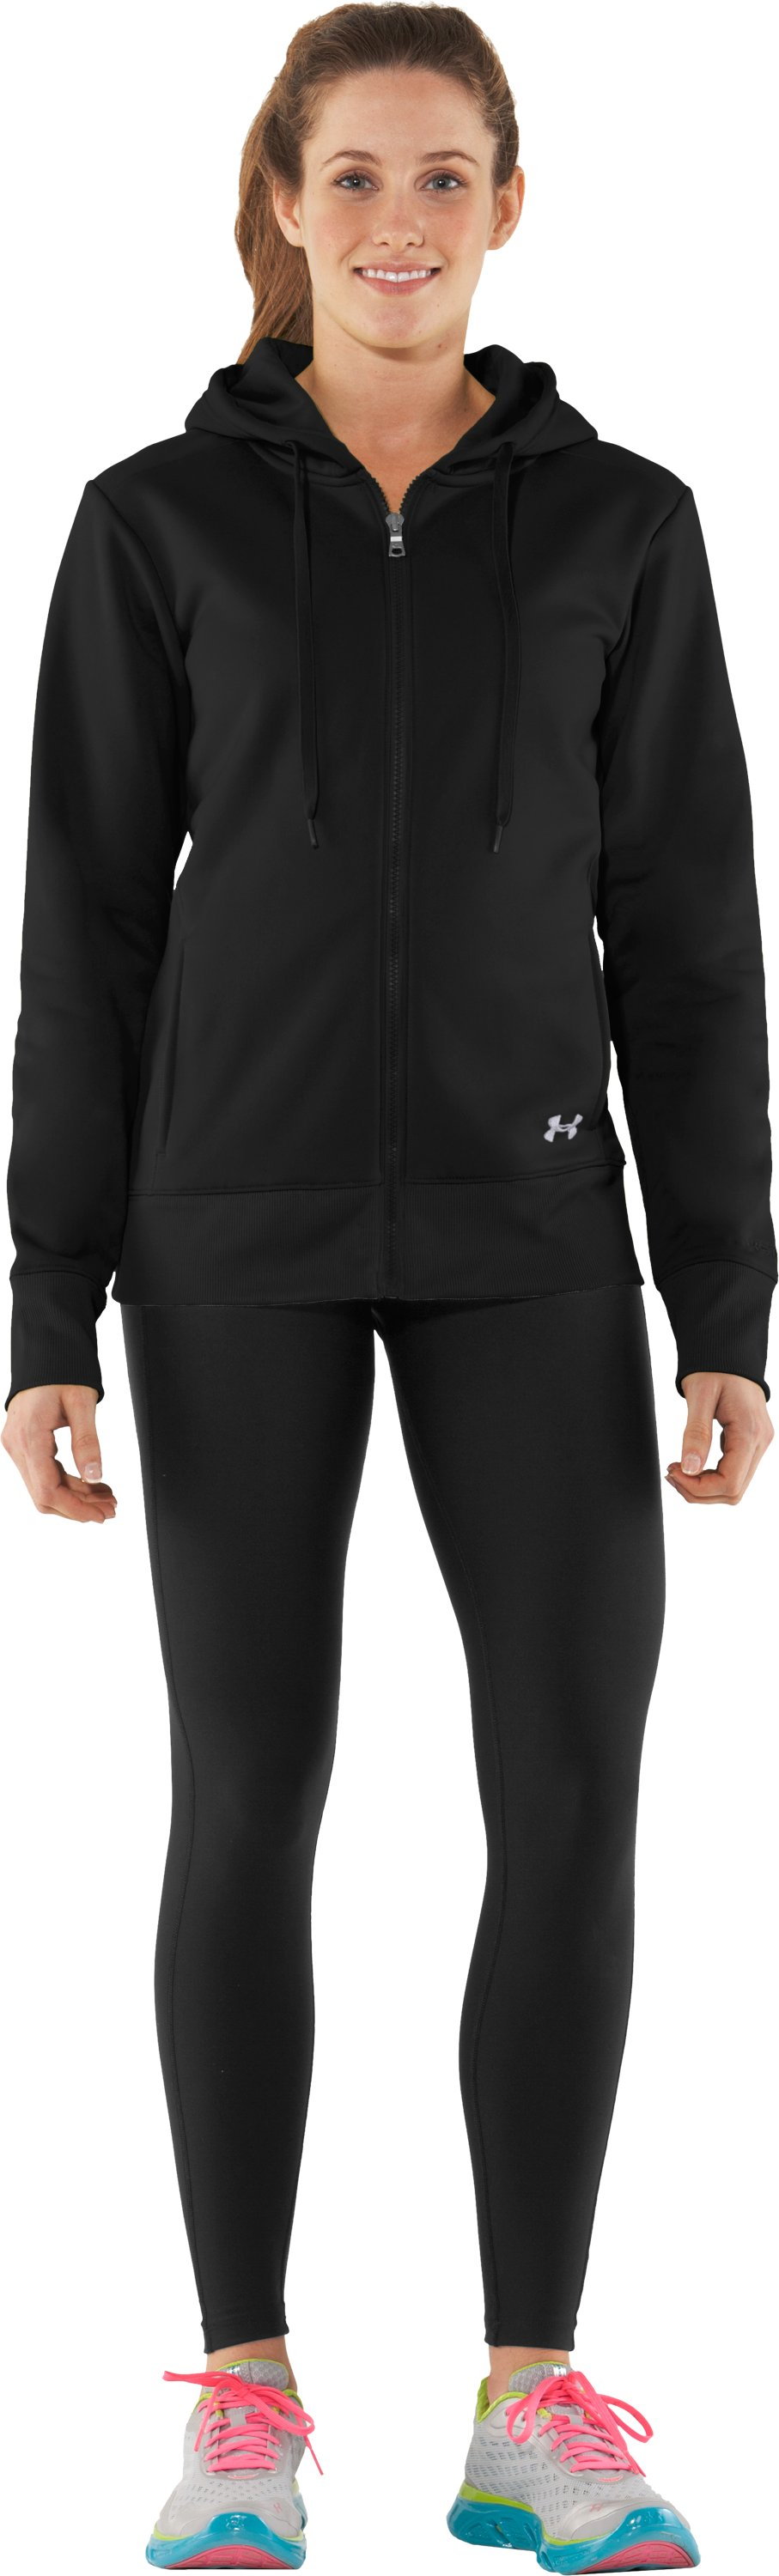 Women's Armour® Fleece Storm Full Zip Hoodie | Under Armour US